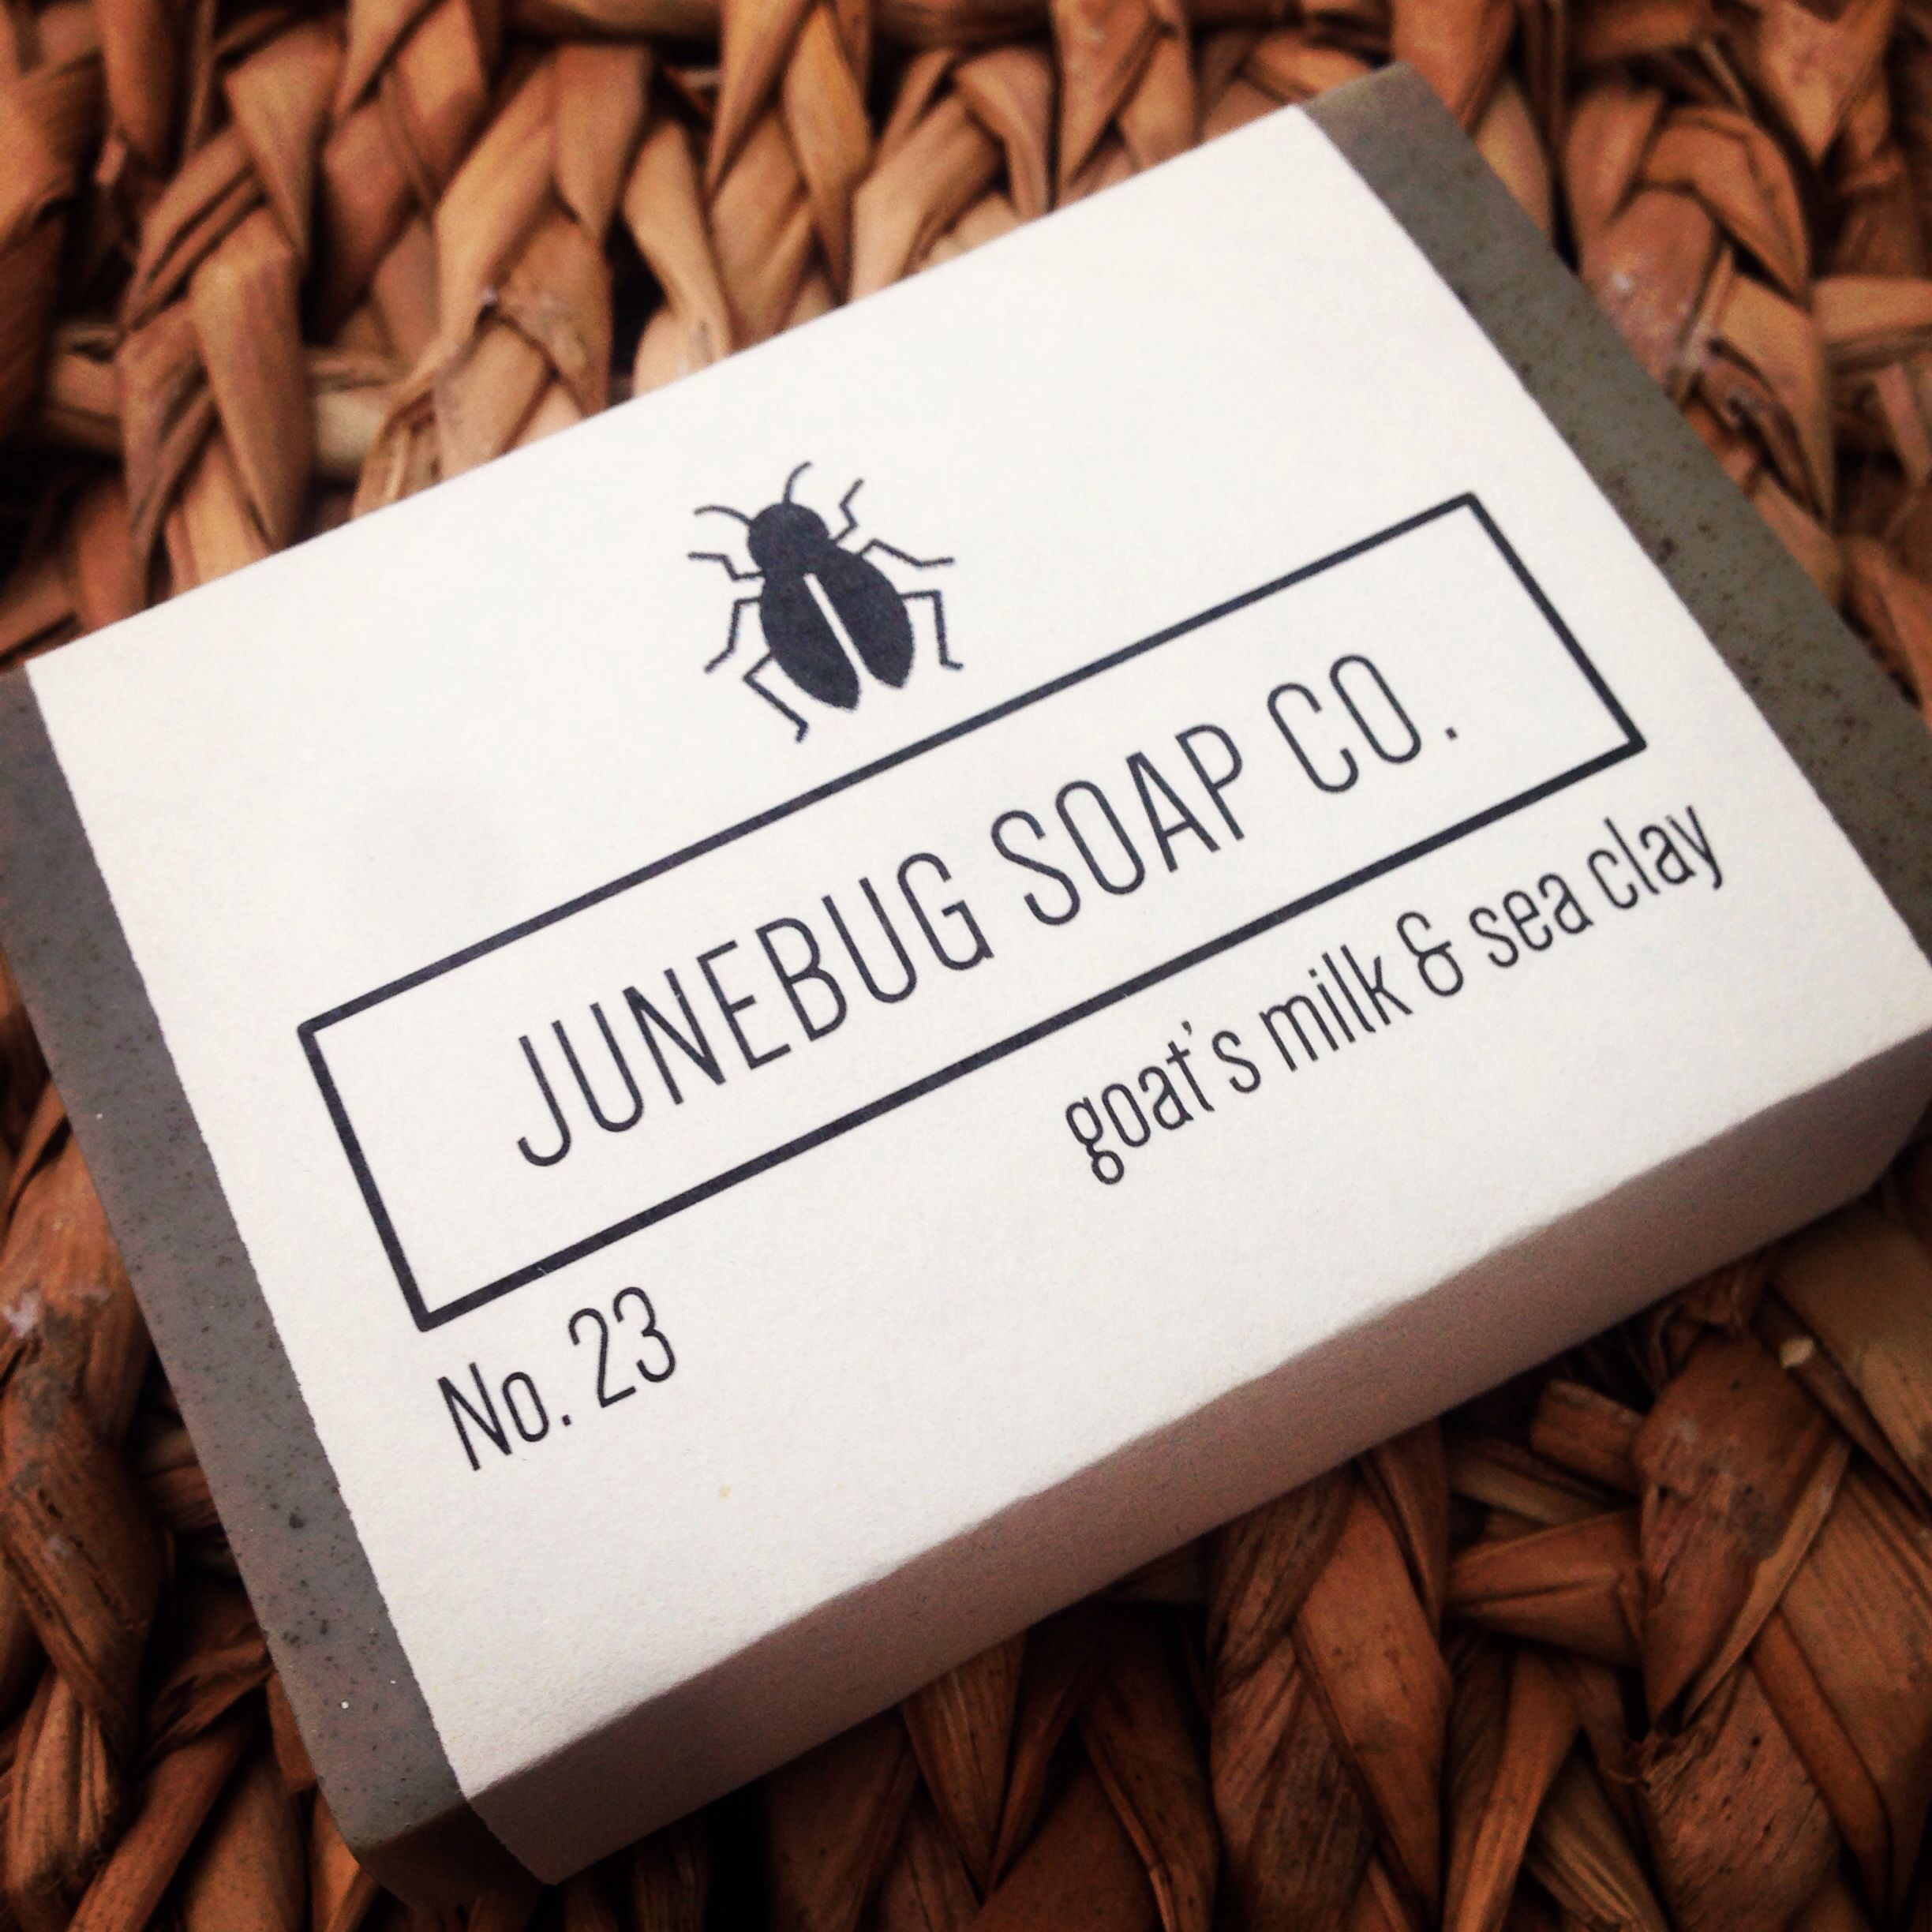 Goat's Milk & Sea Clay all-natural bar soap  Available at www.etsy.com/shop/JunebugSoapCo